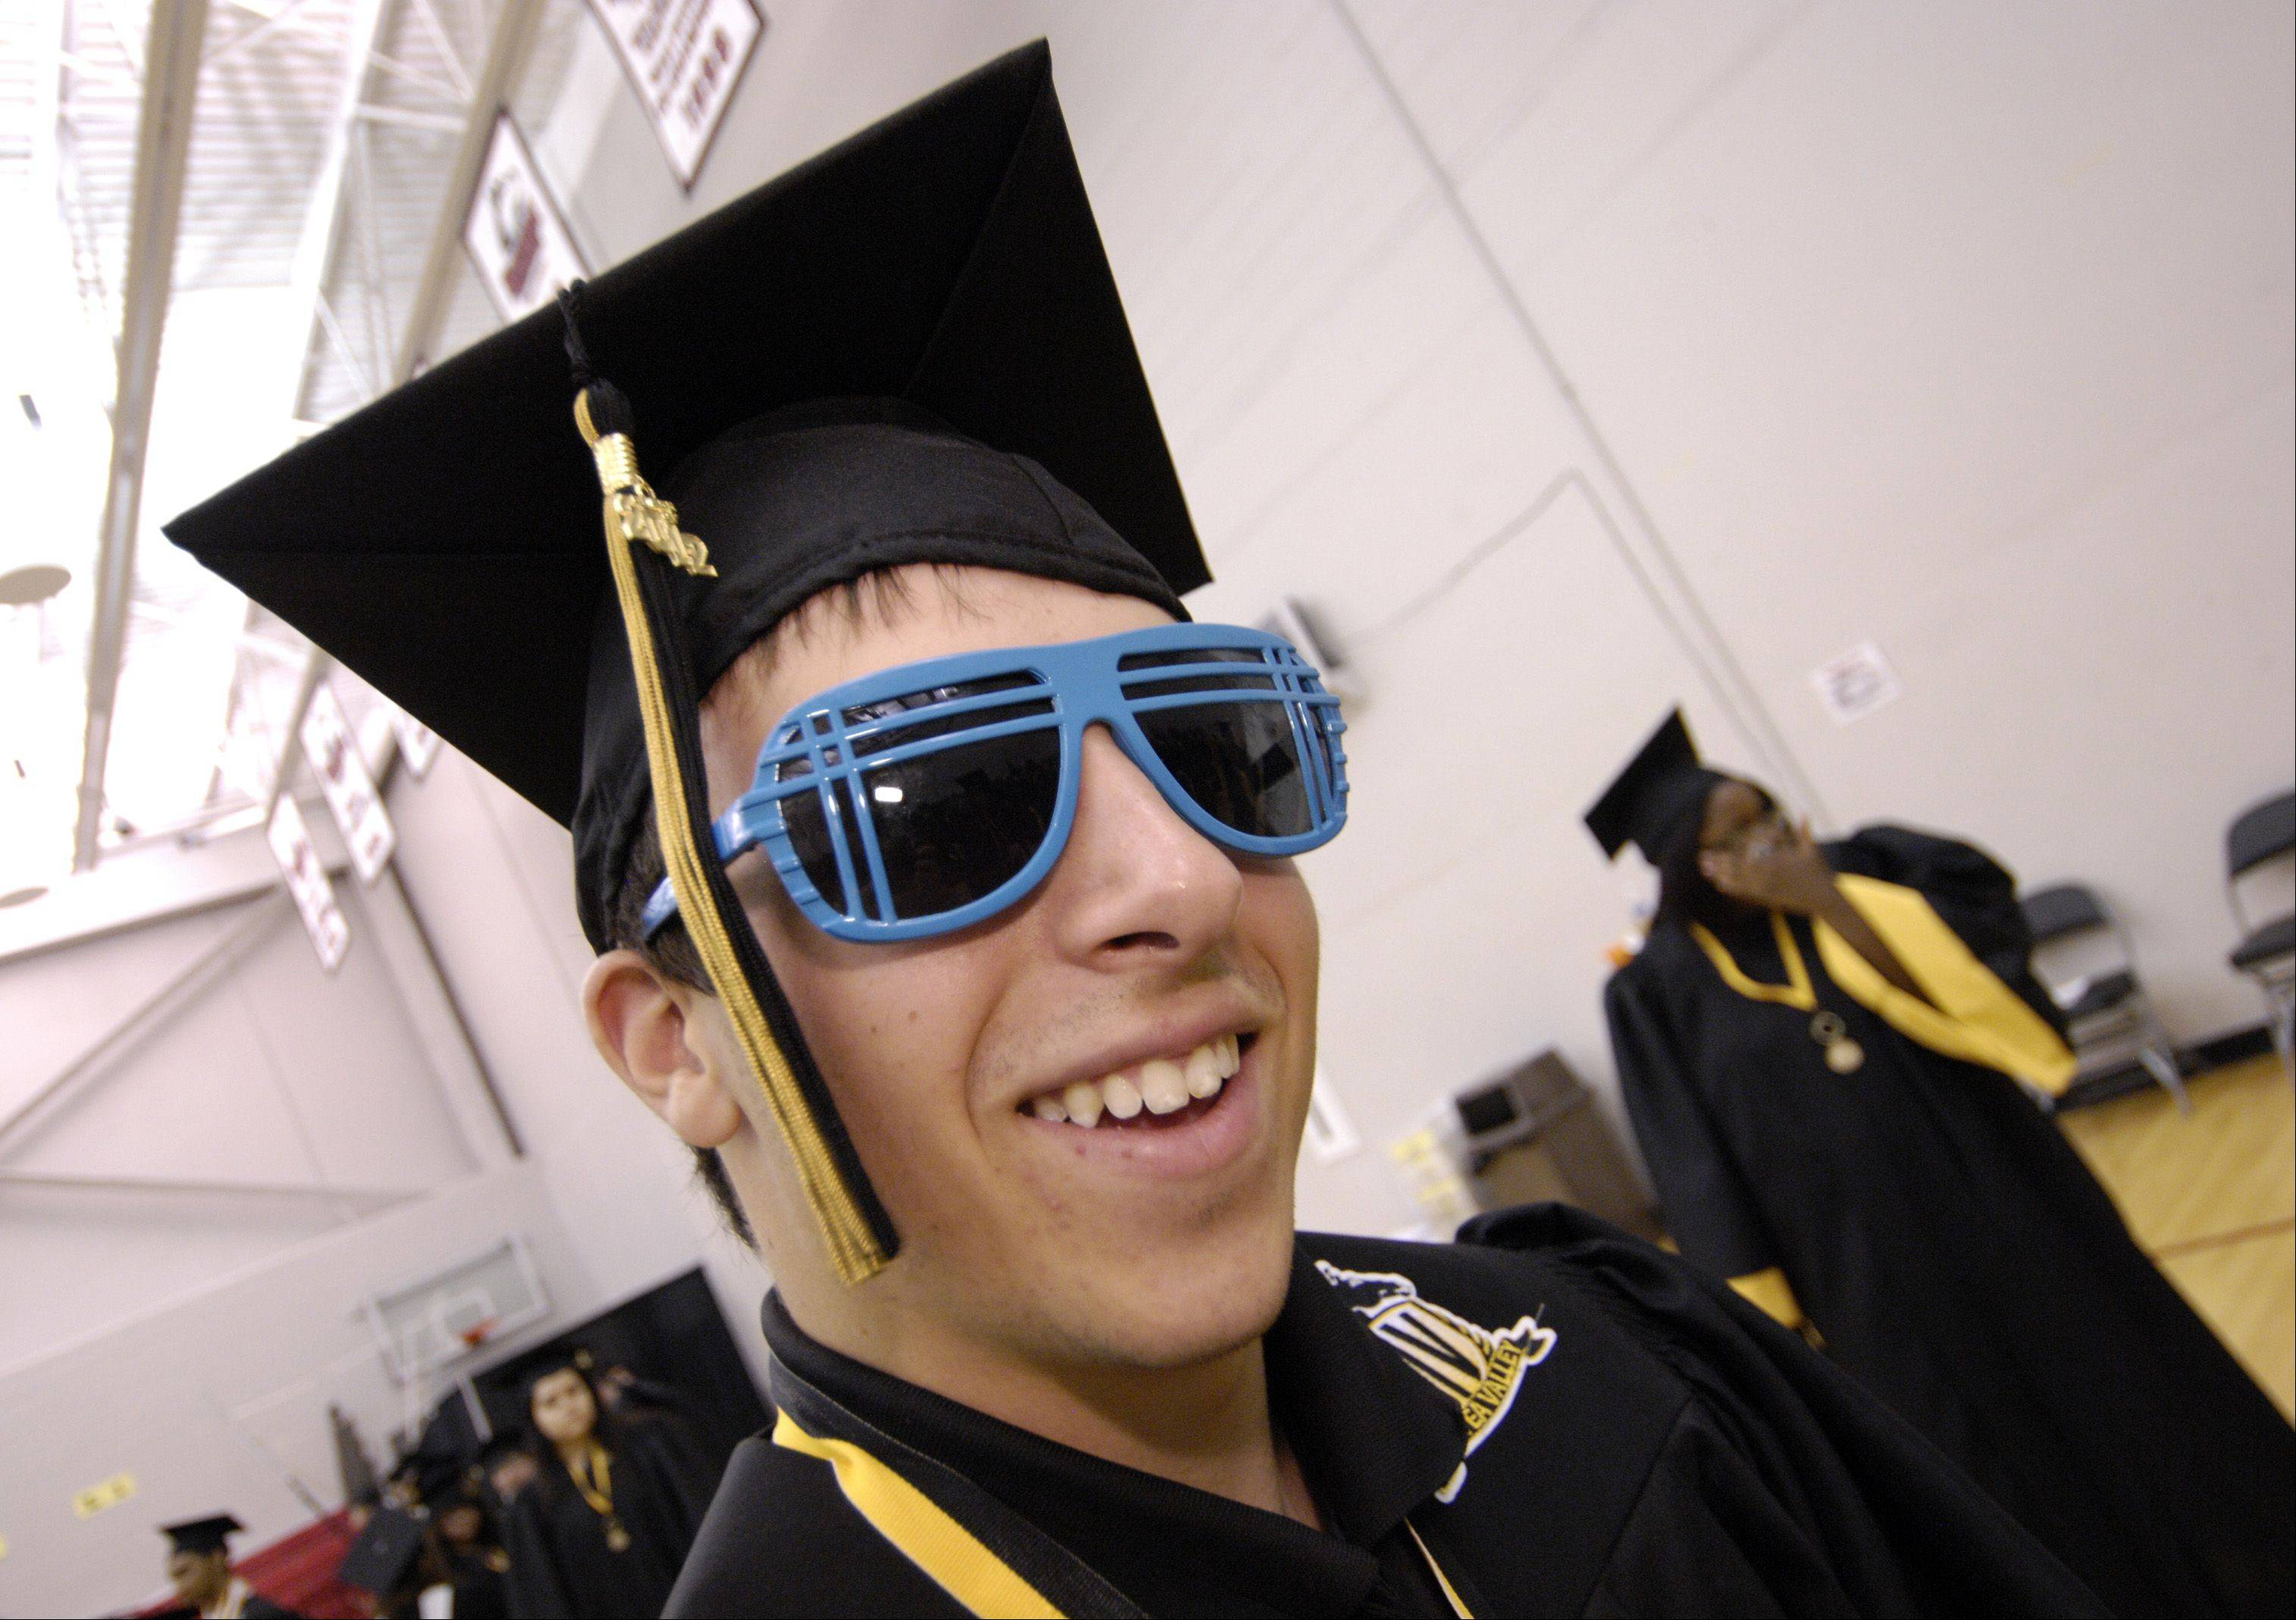 Kyle Luken sports some blue sunglasses as he lines up for the start of the inaugural Metea Valley High School graduation Sunday in DeKalb at the NIU Convocation Center.